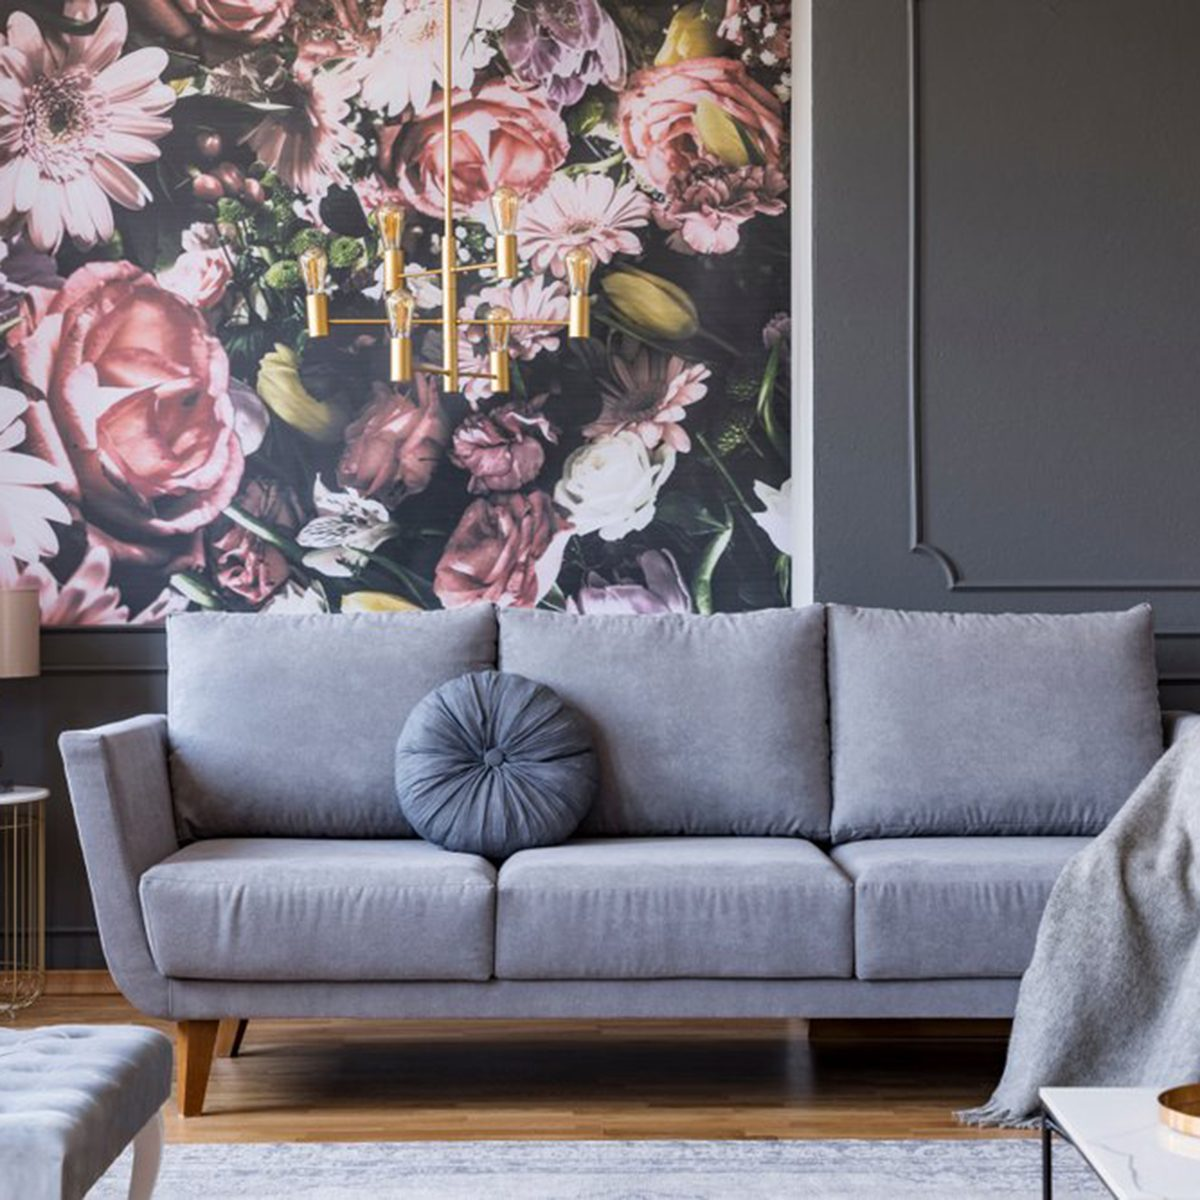 Grey sofa in front of a wall with floral wallpaper